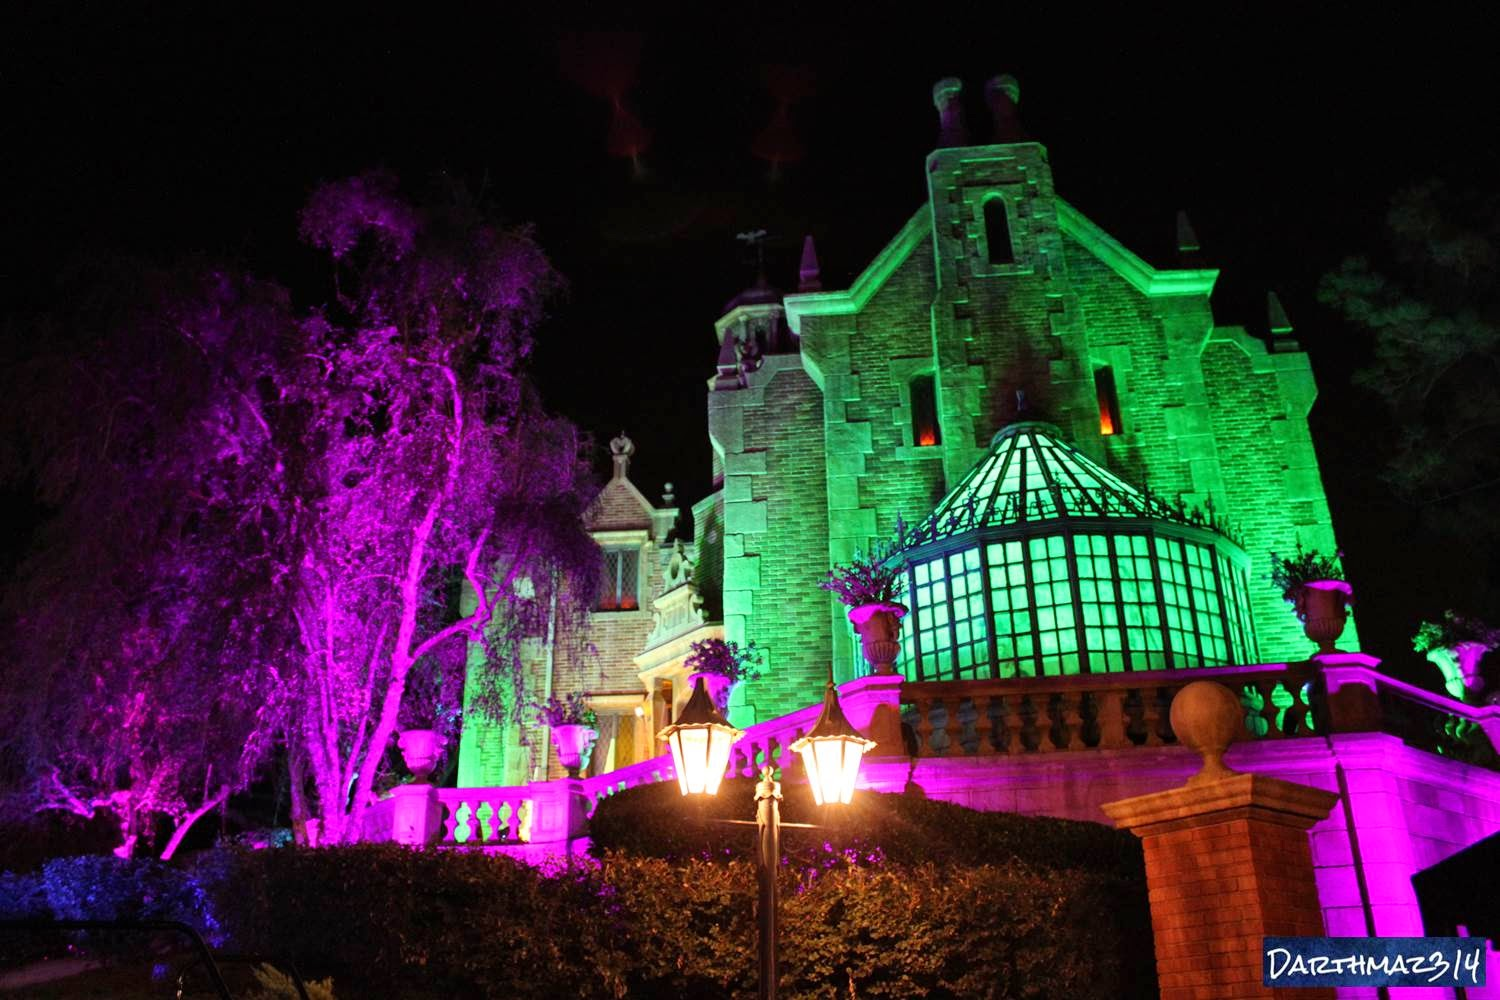 darthmaz314: darthmaz314 Disney Snapshot of the Day - The Haunted ...